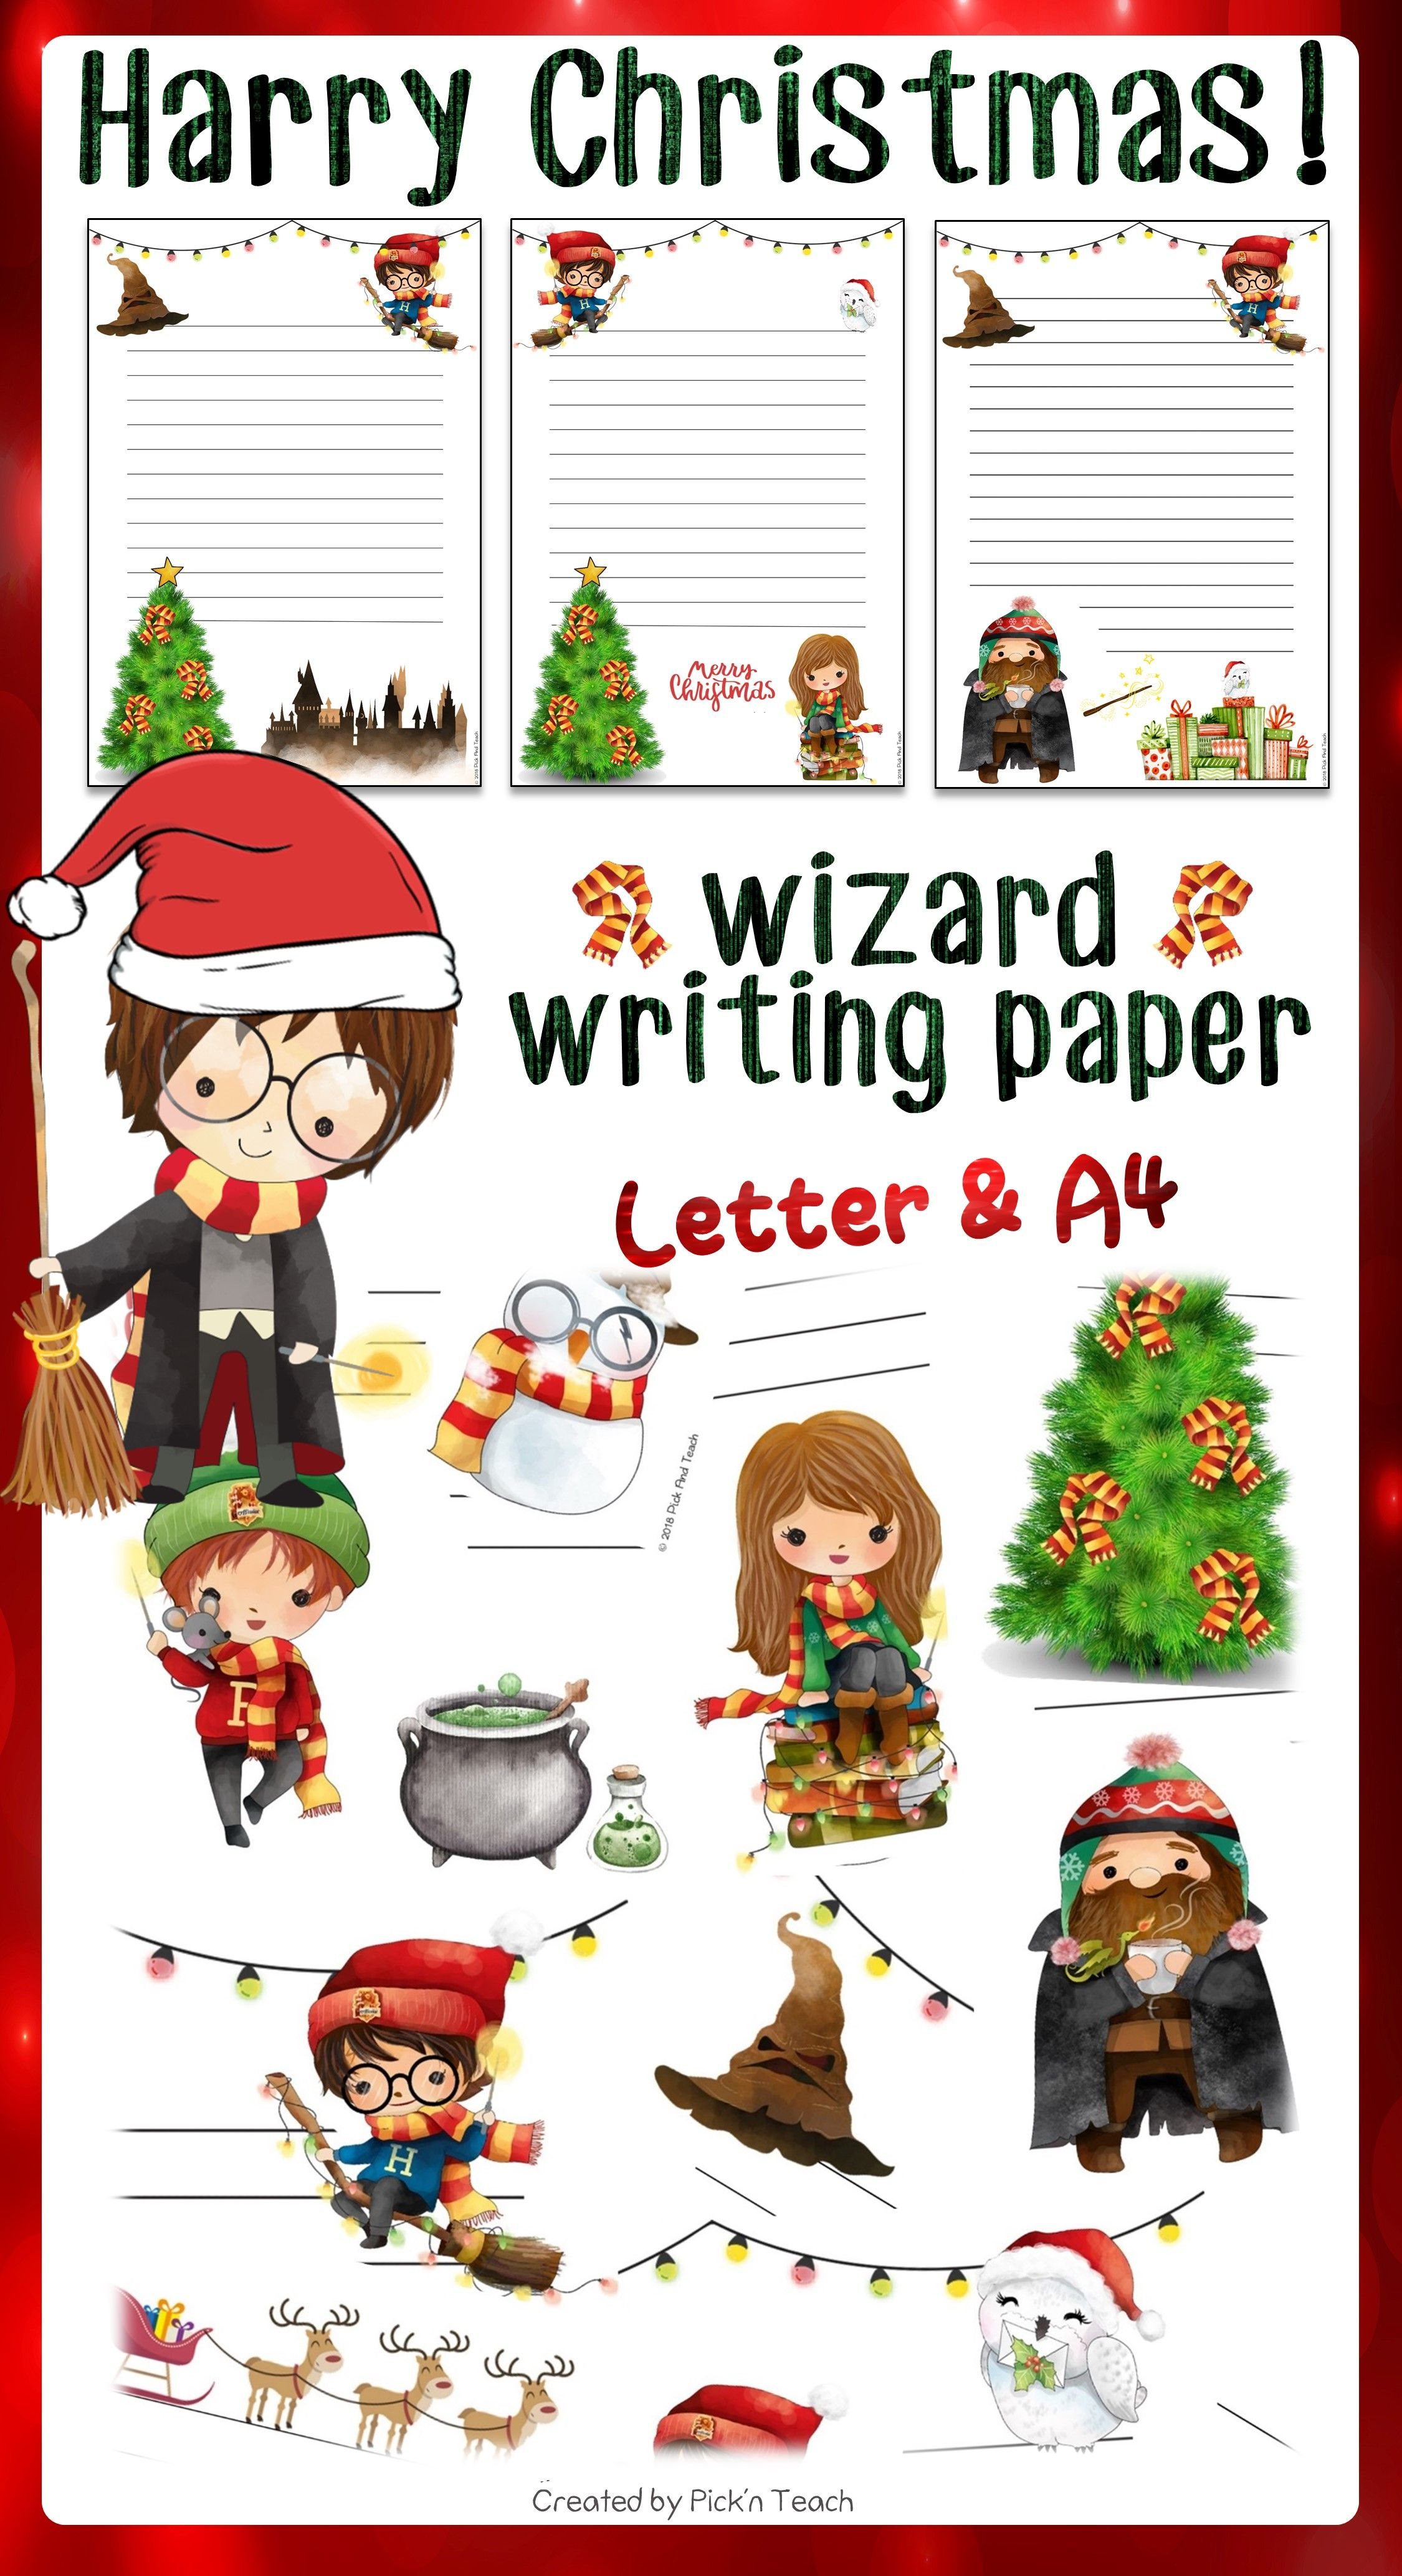 Christmas Writing Paper For Harry Potter Fans